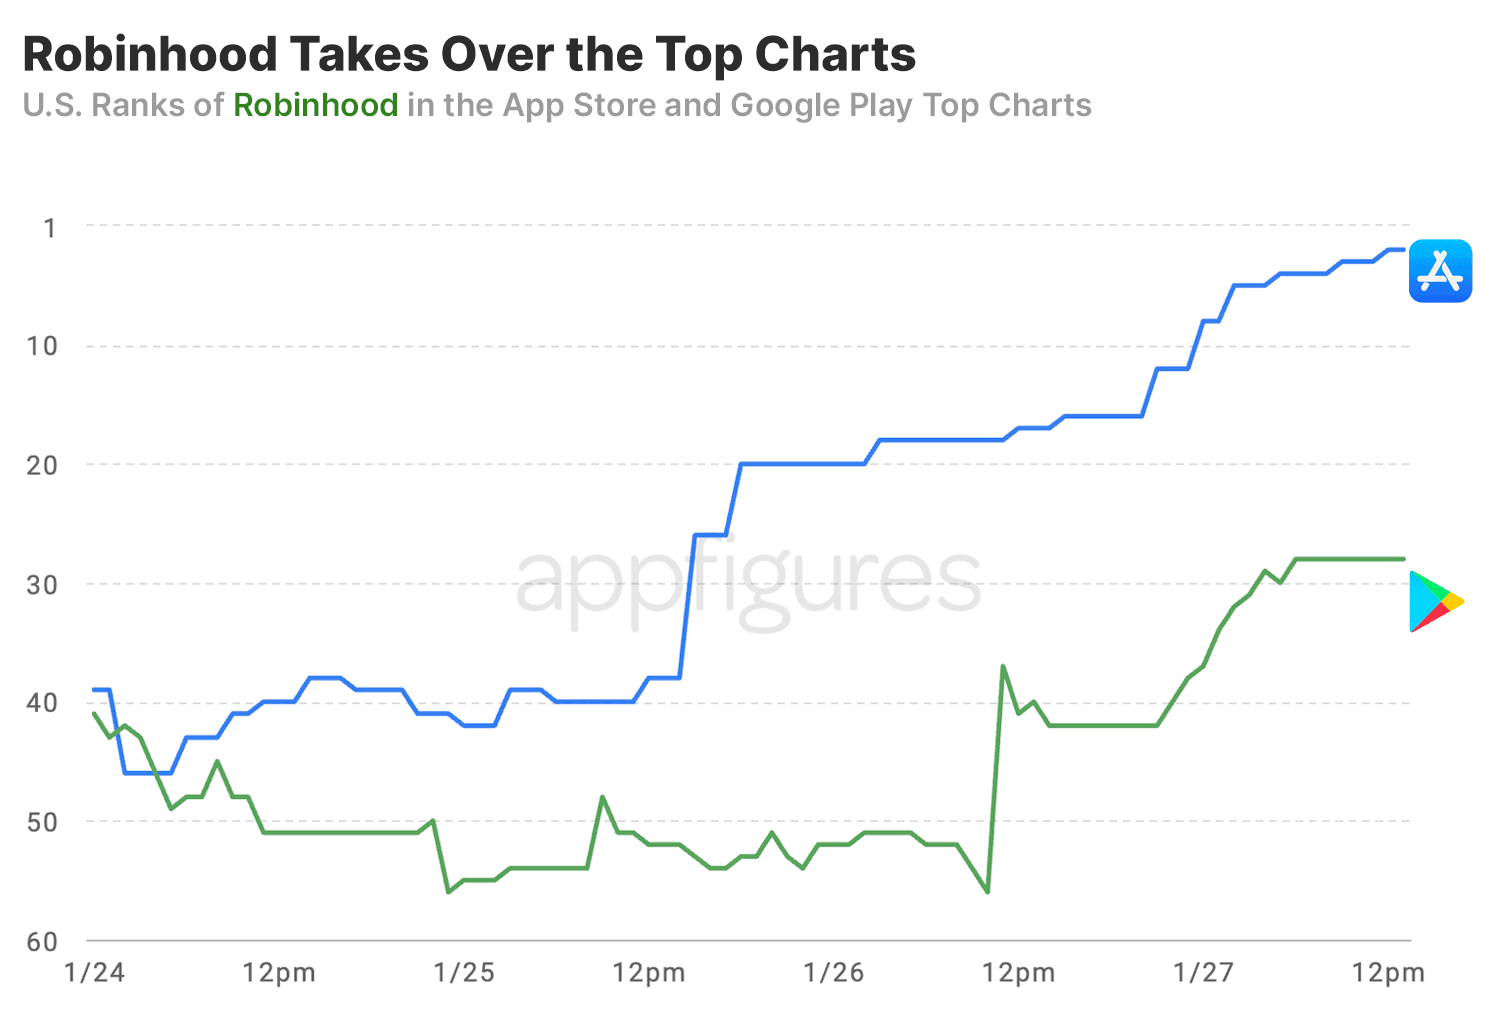 Wallstreetbets Effect on the App Stores Charts - 3